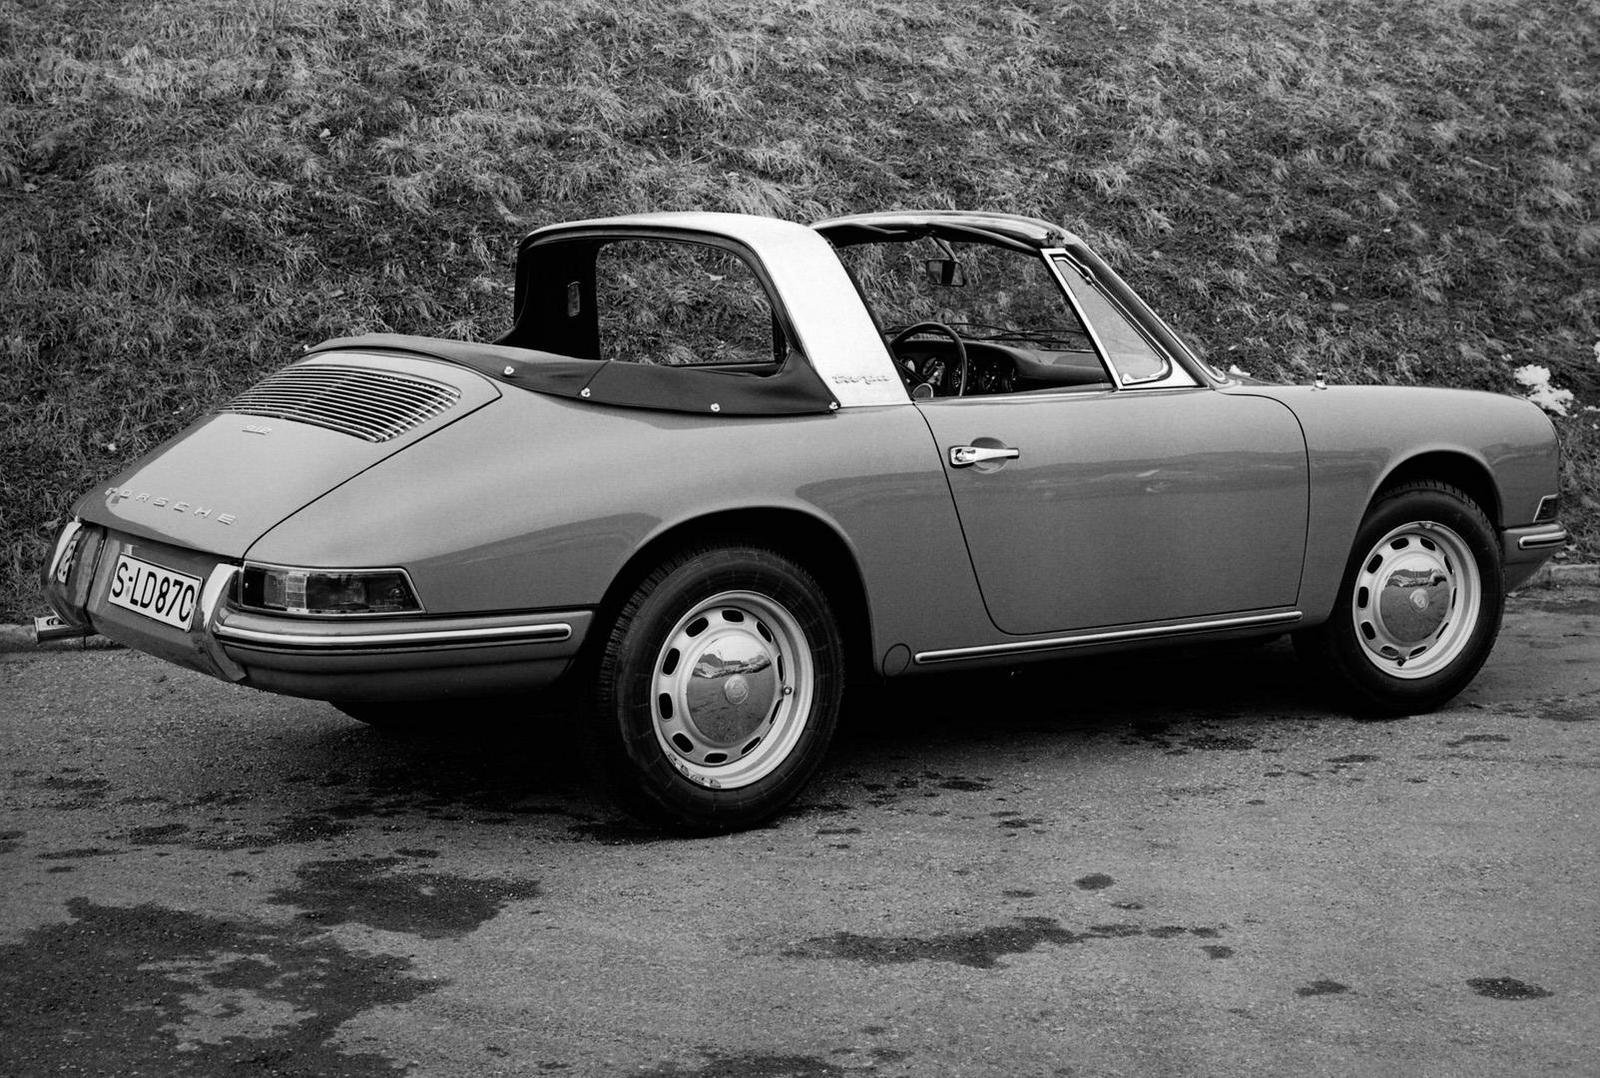 world of classic cars porsche 912 world of classic cars rank 12. Black Bedroom Furniture Sets. Home Design Ideas